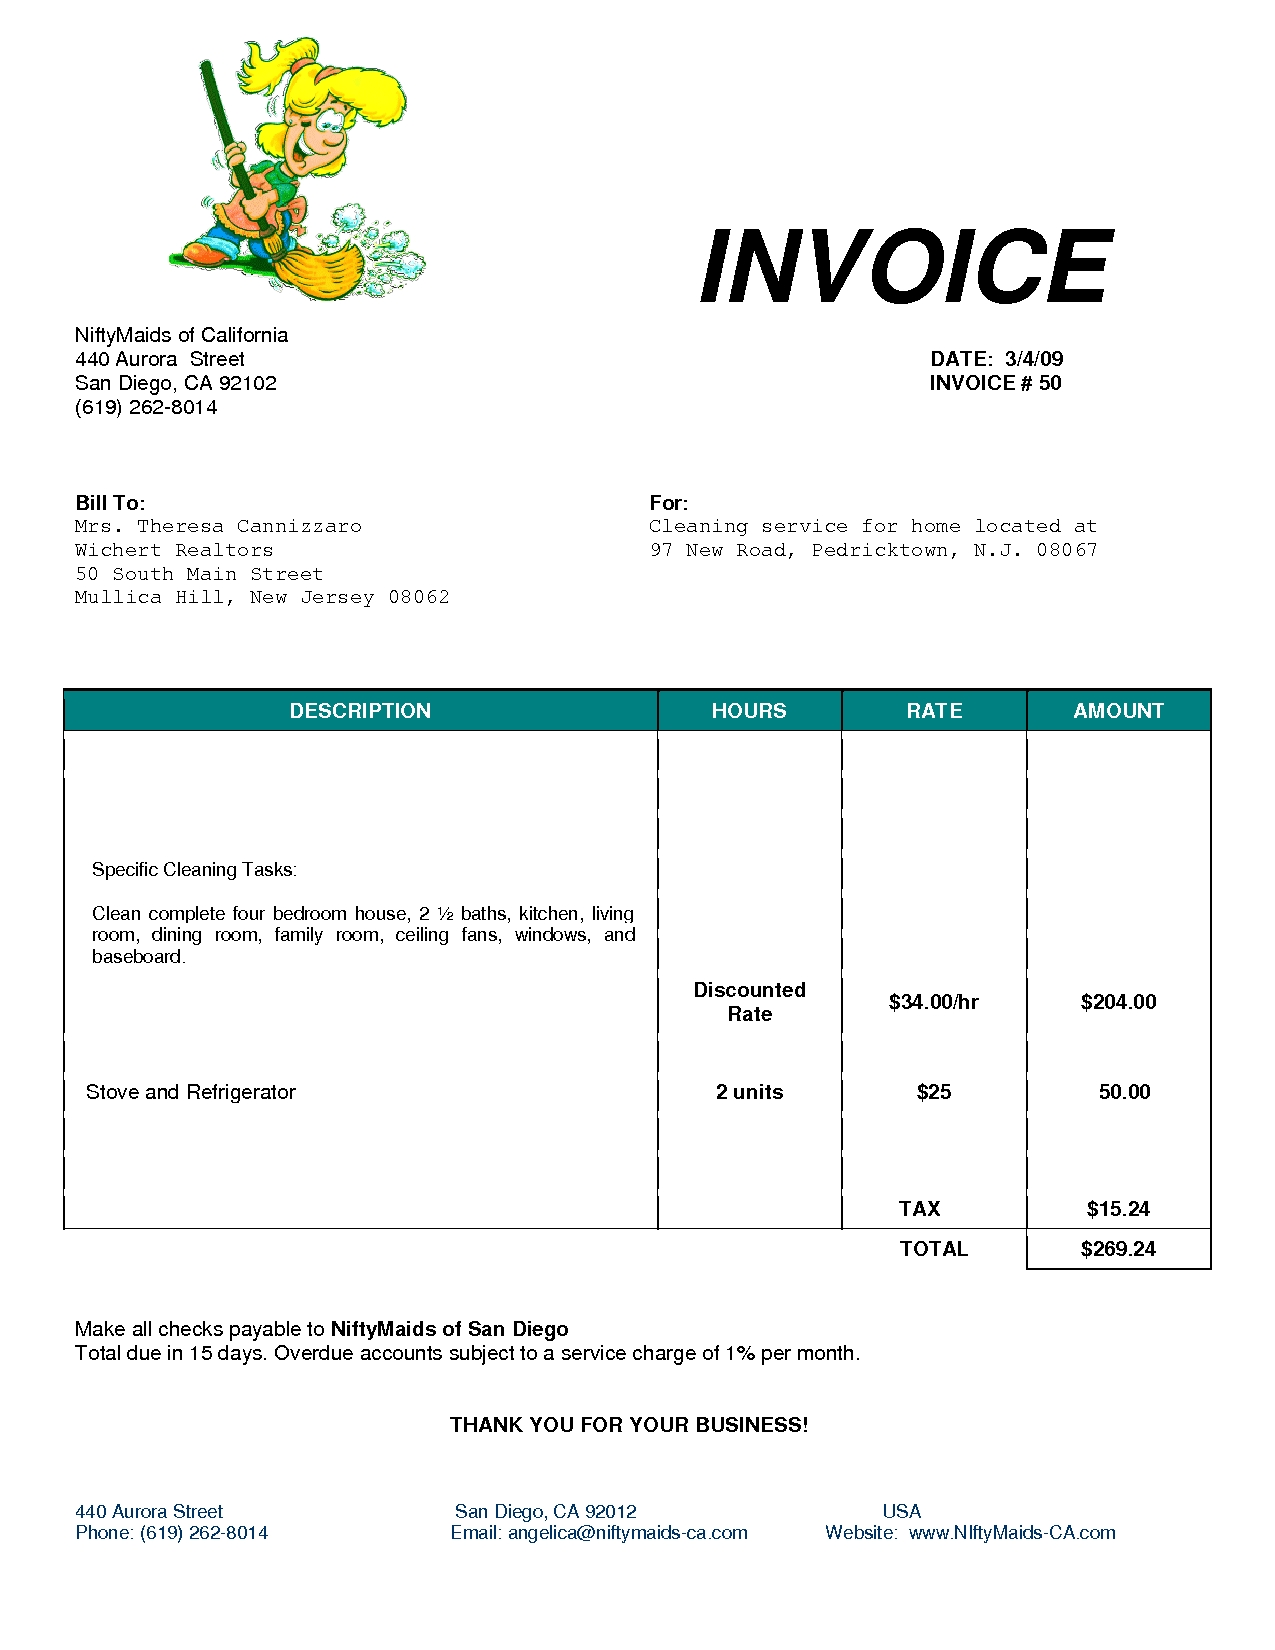 cleaning bill invoice services invoice ideas for the house cleaning services invoice